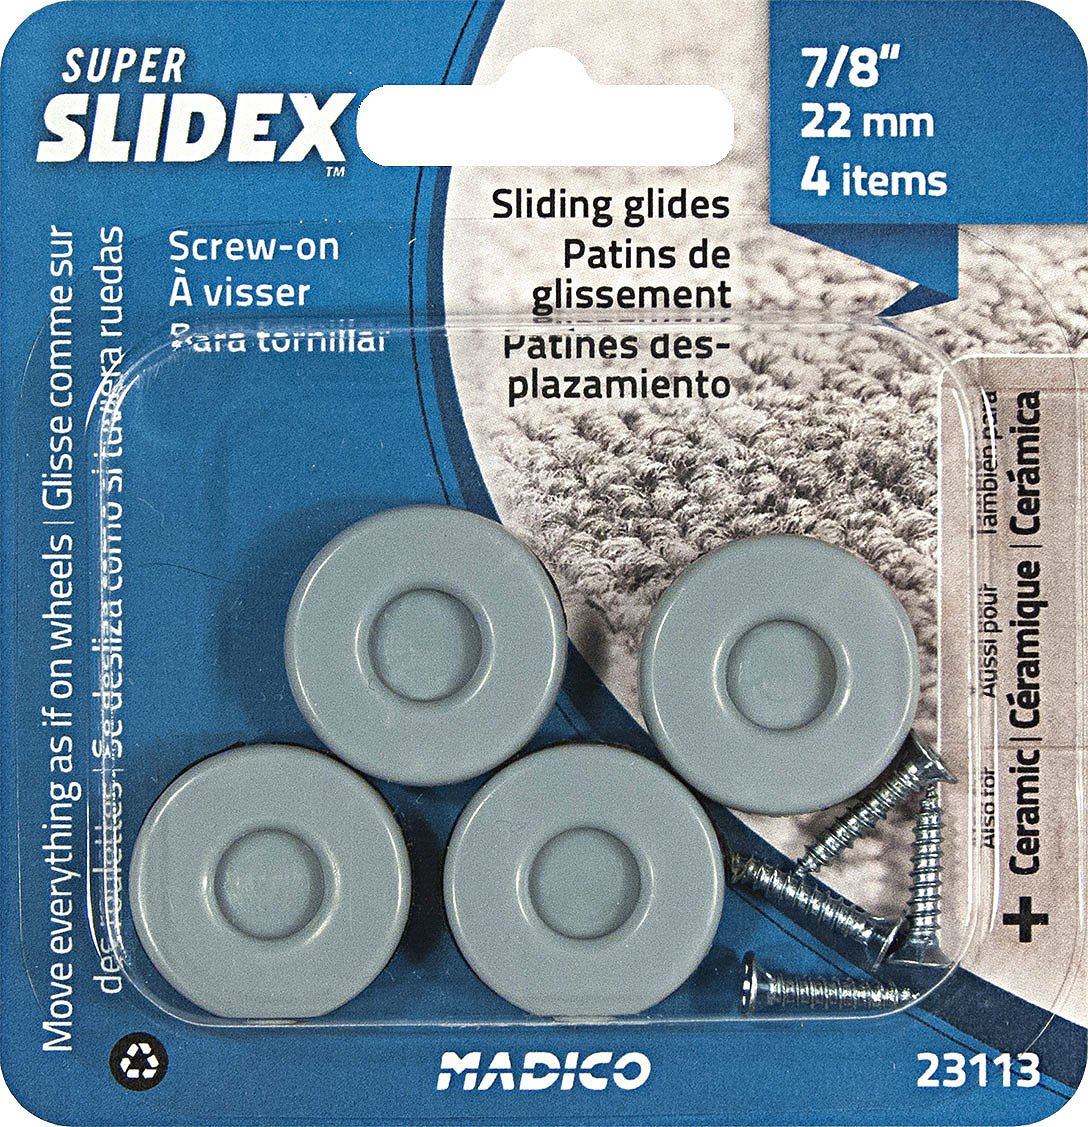 Richelieu Hardware - 23113 - Pack of 4 Units - Super SLIDEX Gray Round Ultra-Sliding Glides - - Amazon.com